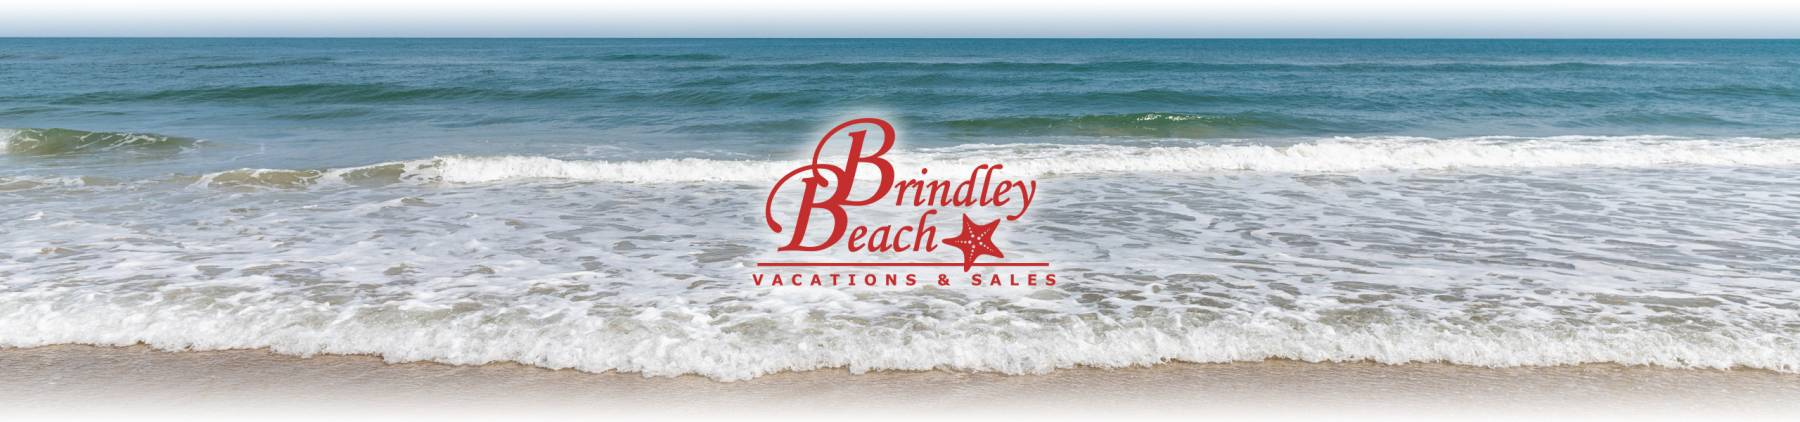 Brindley Beach Vacations Oceanfront Vacation Rentals